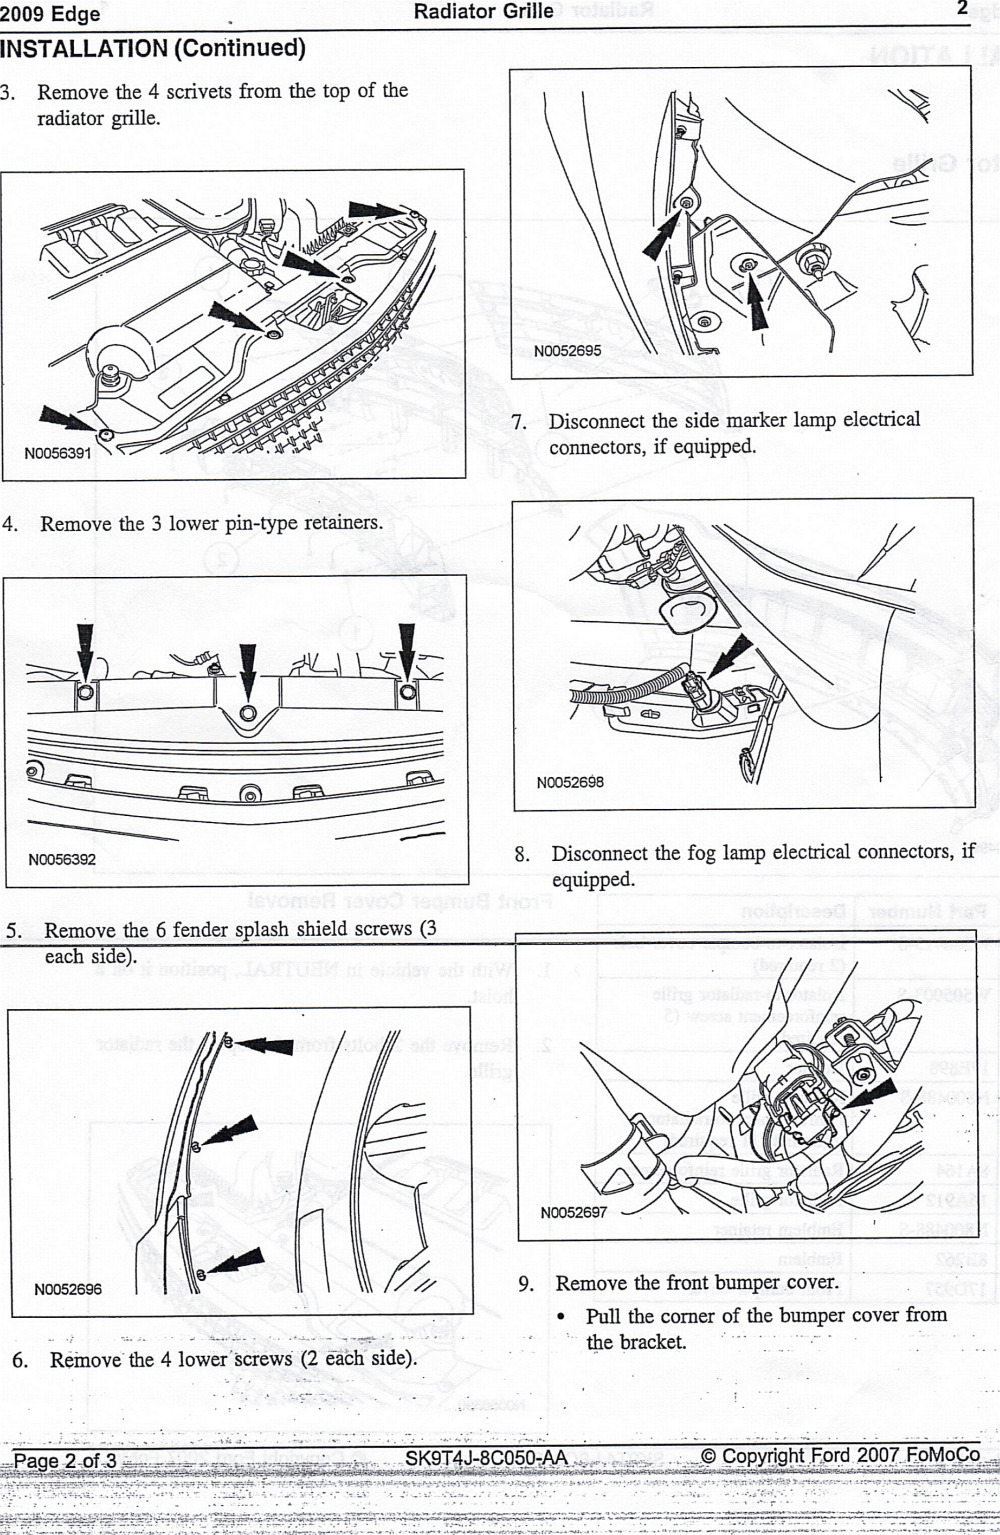 2007 Lincoln Mkz Headlight Wiring Diagram